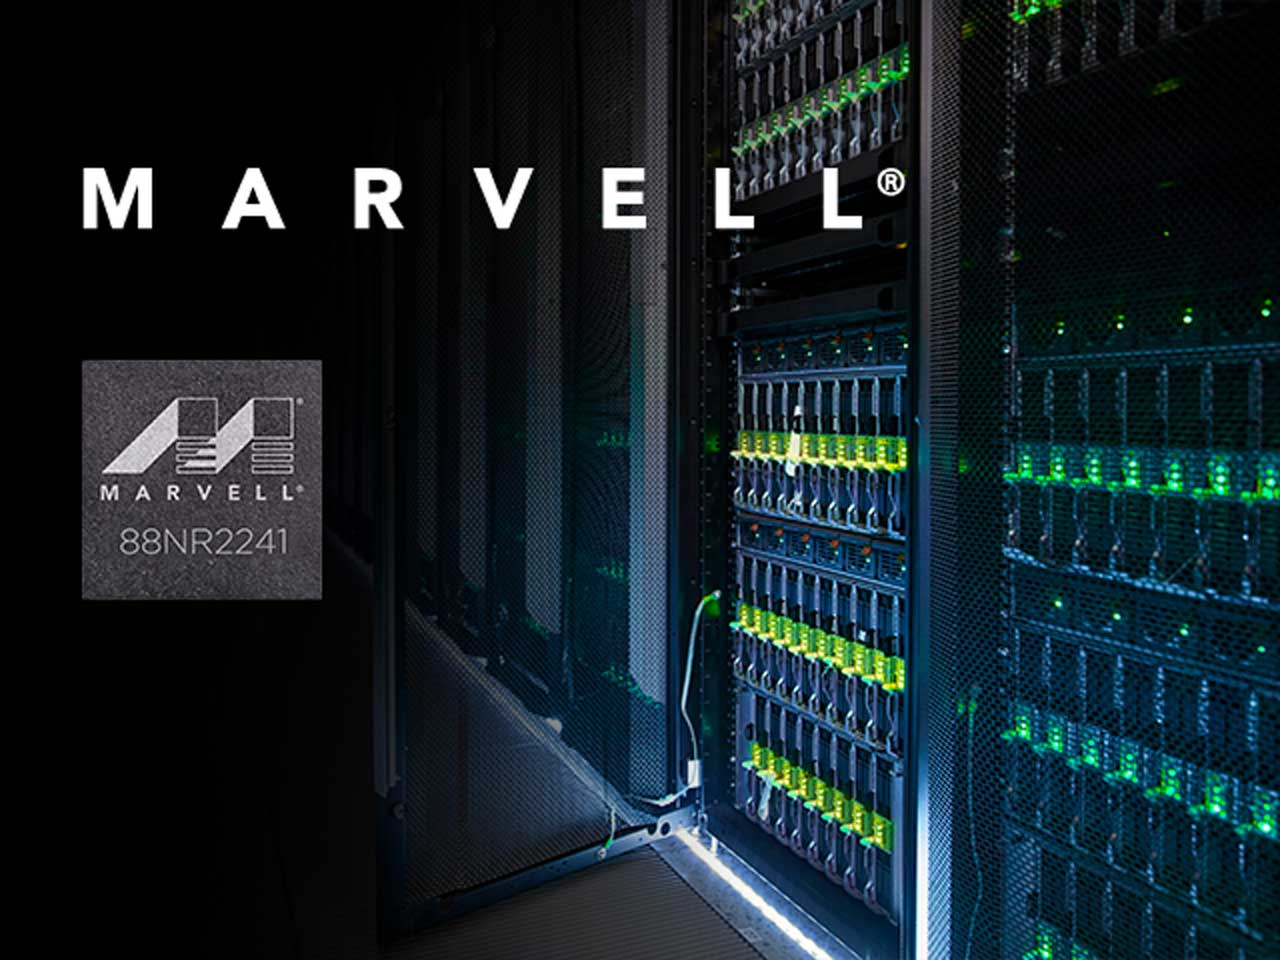 The Marvell 88NR2241 intelligent NVMe switch allows data centers to aggregate and manage resources between multiple NVMe SSD controllers and workload-offload accelerators.